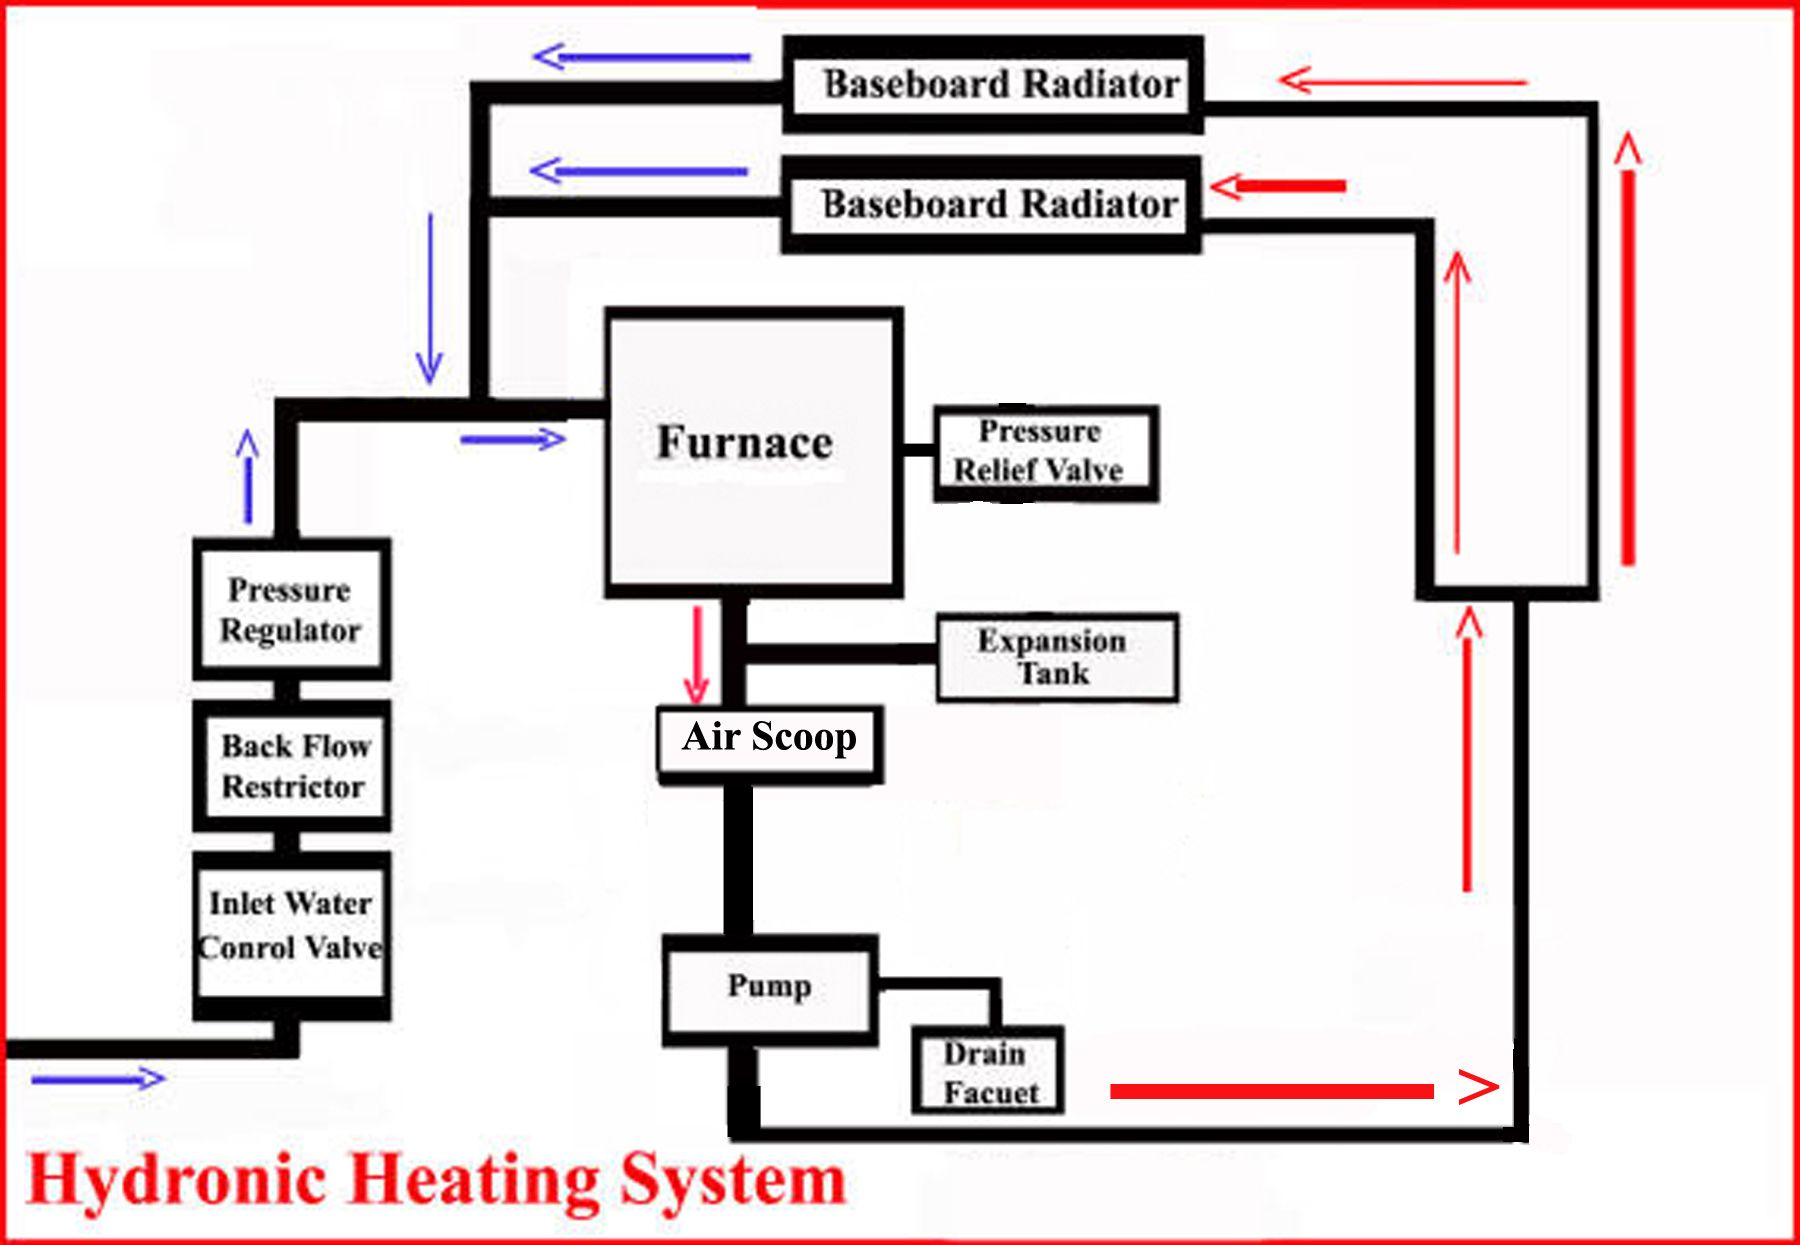 Hydronic Heating System Configuration And Components Heating Systems Hydronic Heating Systems Hydronic Heating